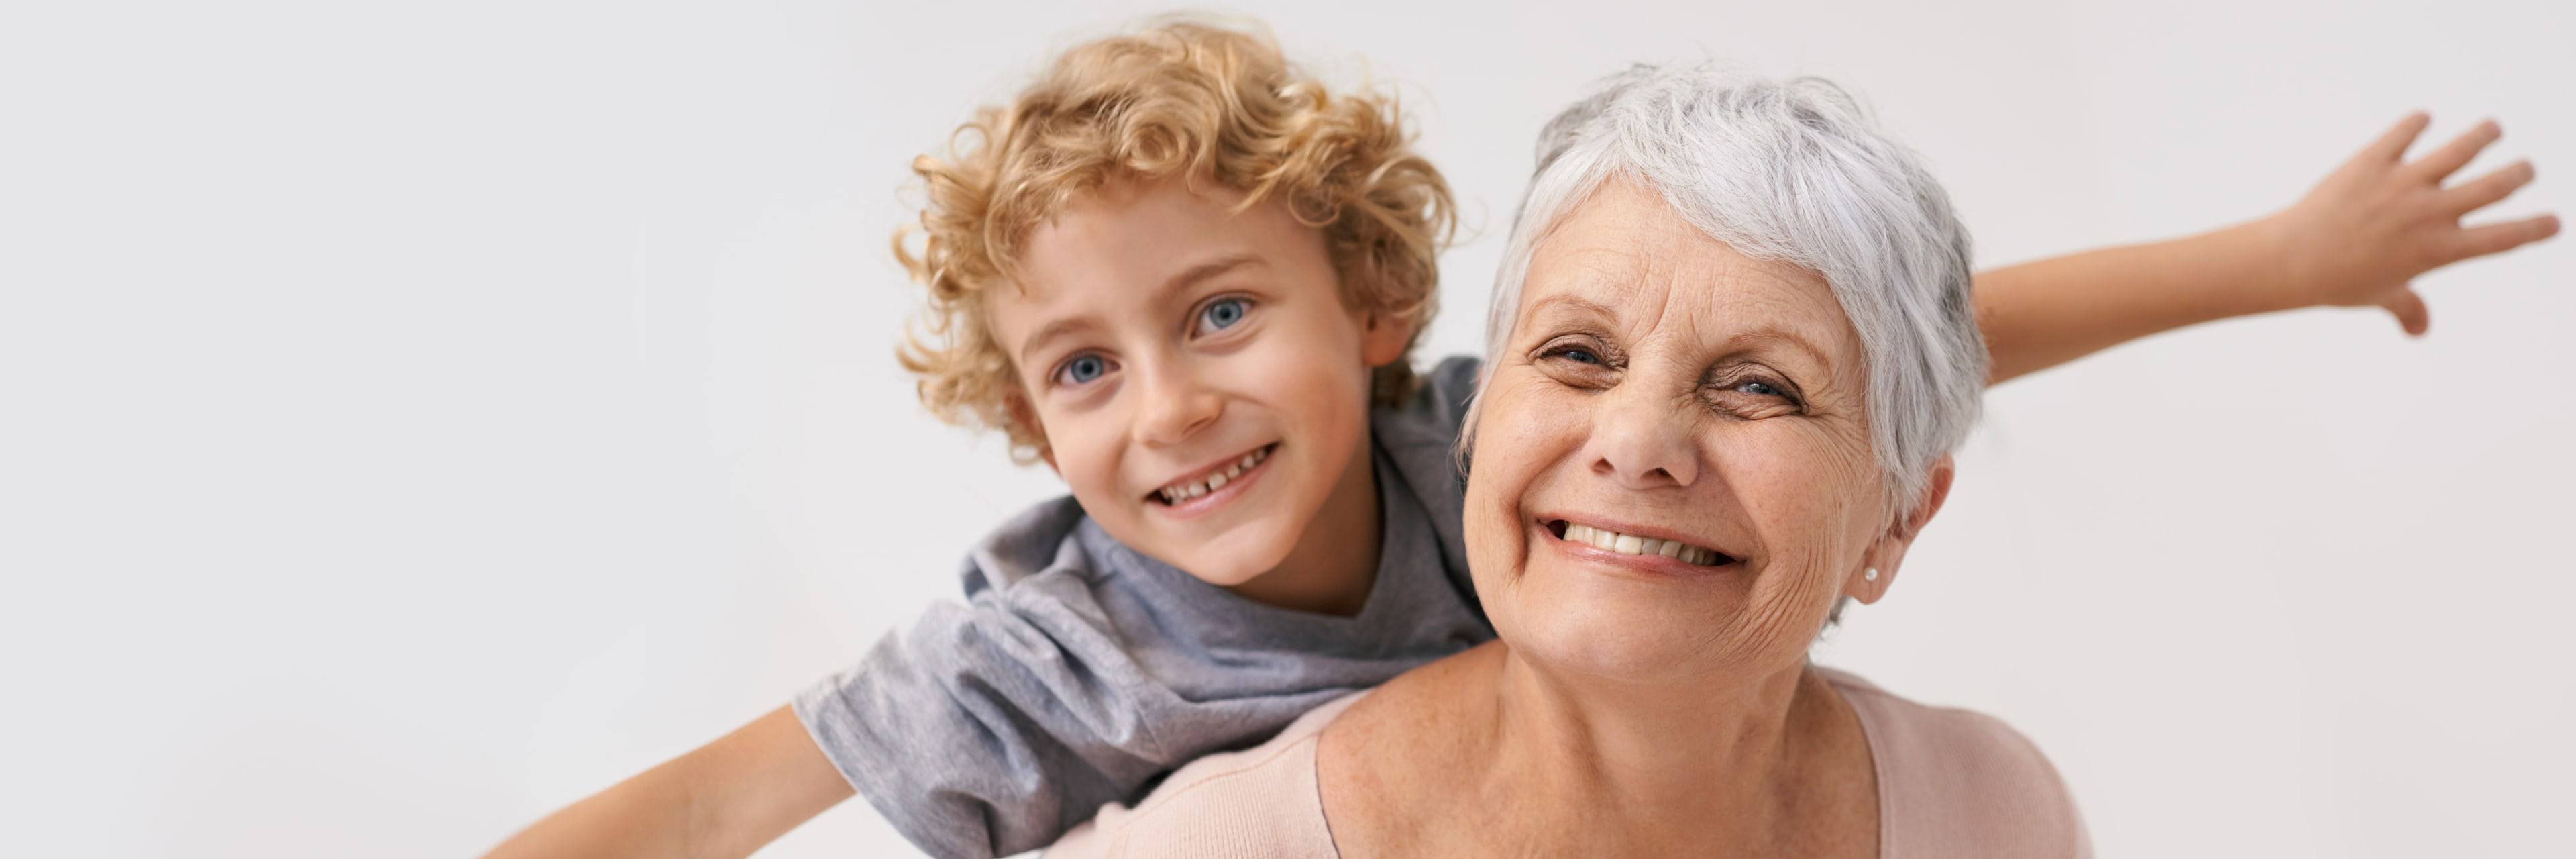 smiling woman giving her grandson a piggyback ride